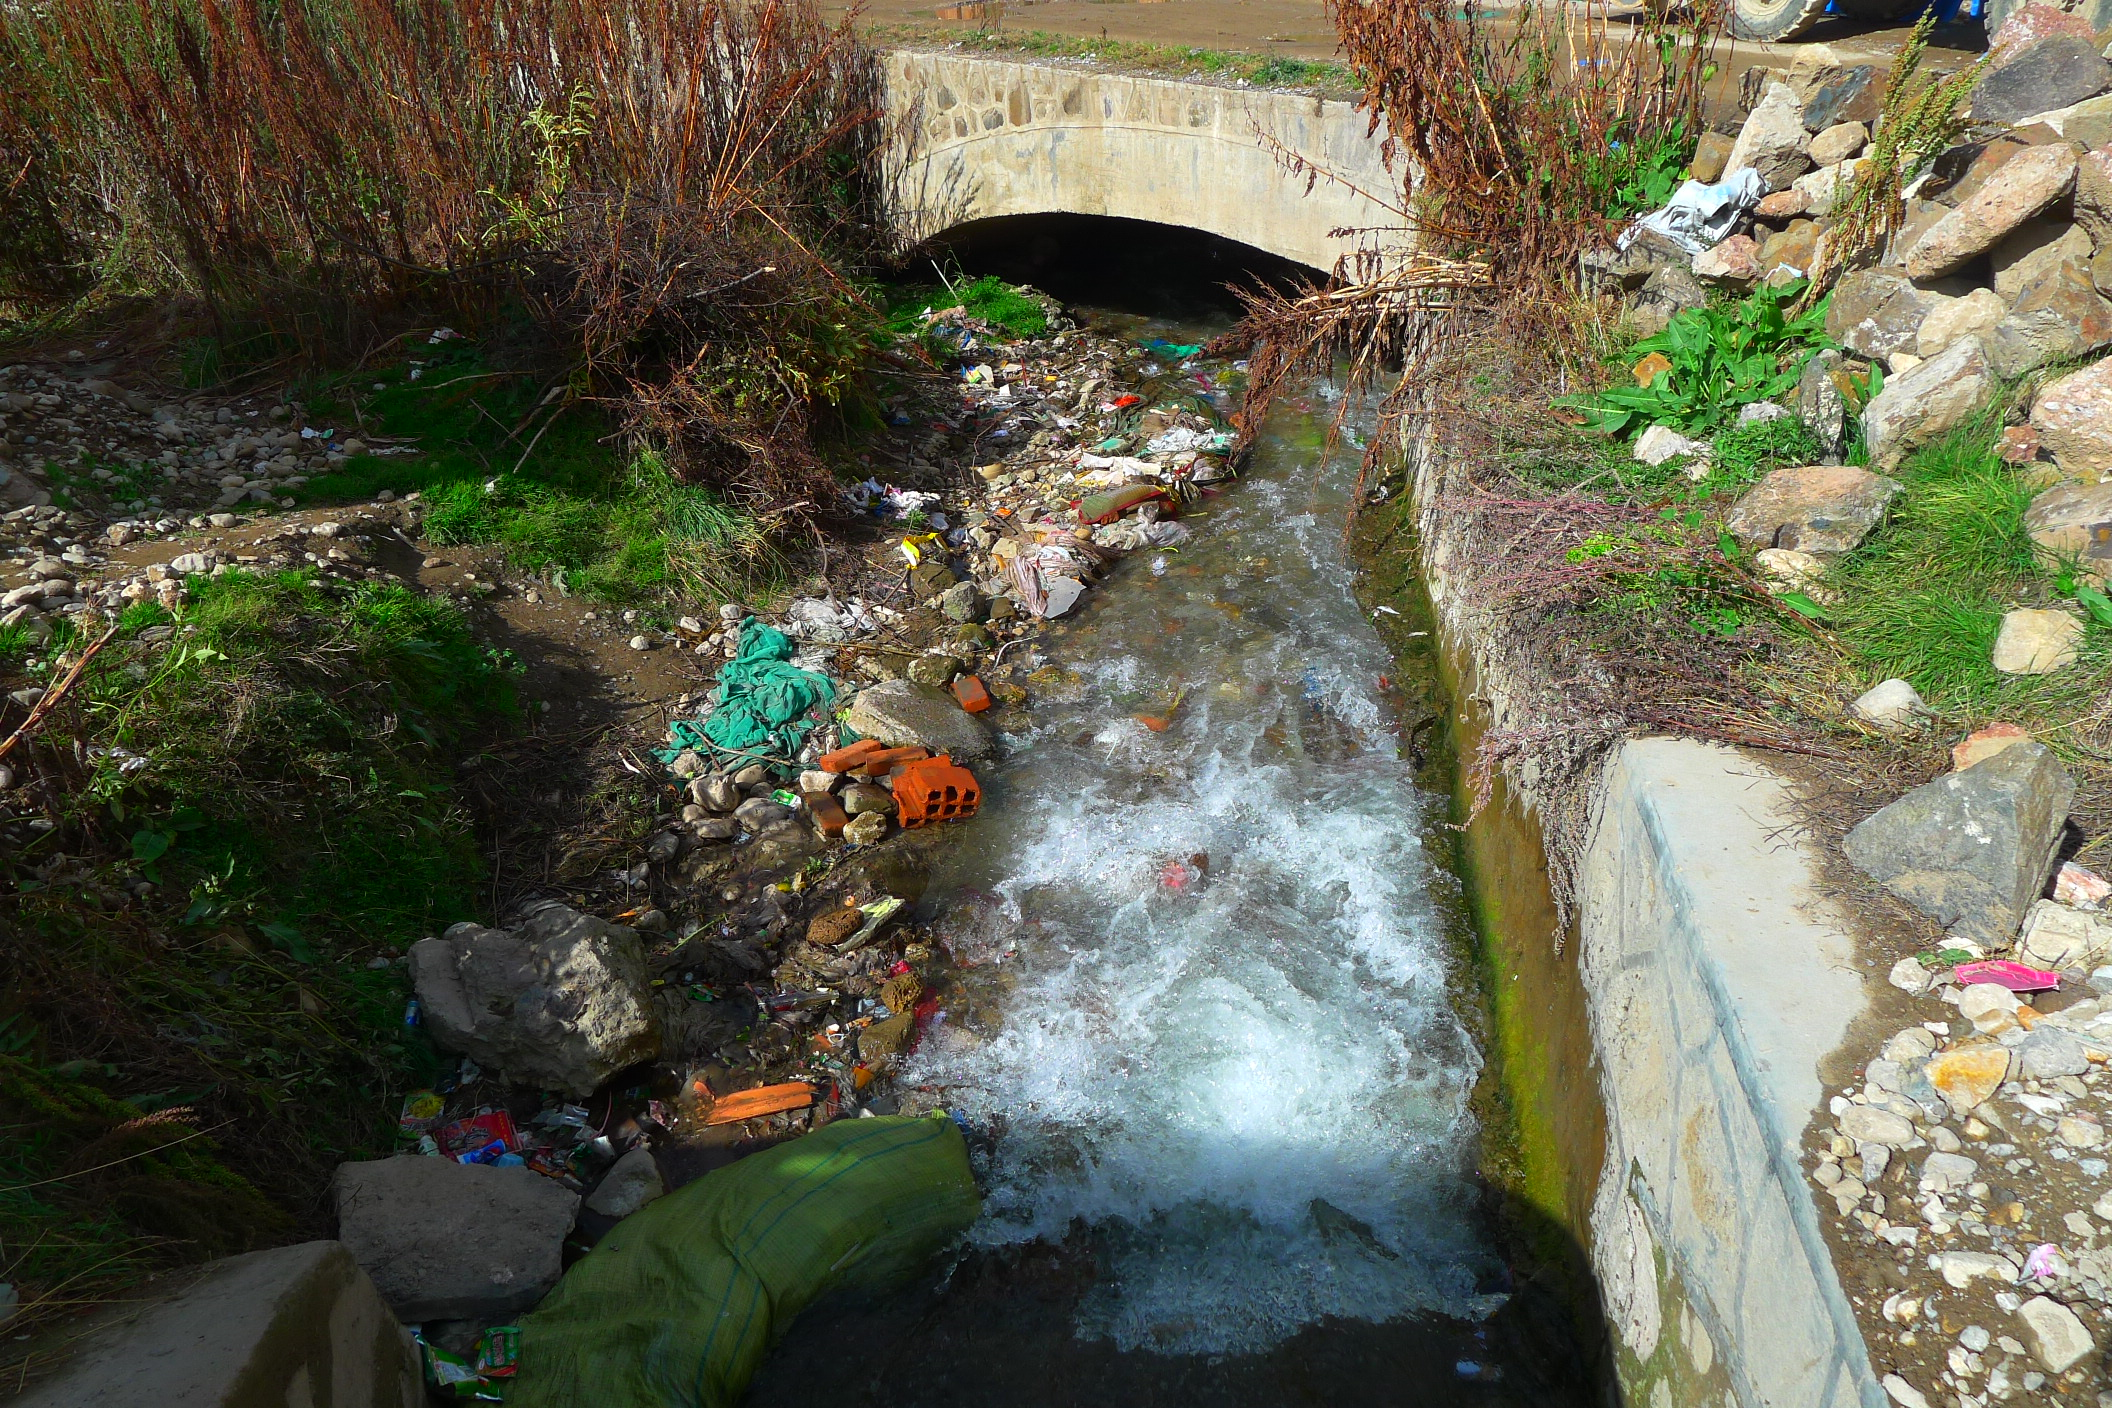 However the human inhabitants have no consideration or care for the environment, and like much of China and Taiwan throw rubbish and pollutants into the rivers, streams, outside their homes and anywhere except a rubbish bin. Its extremely depressing and disturbing.